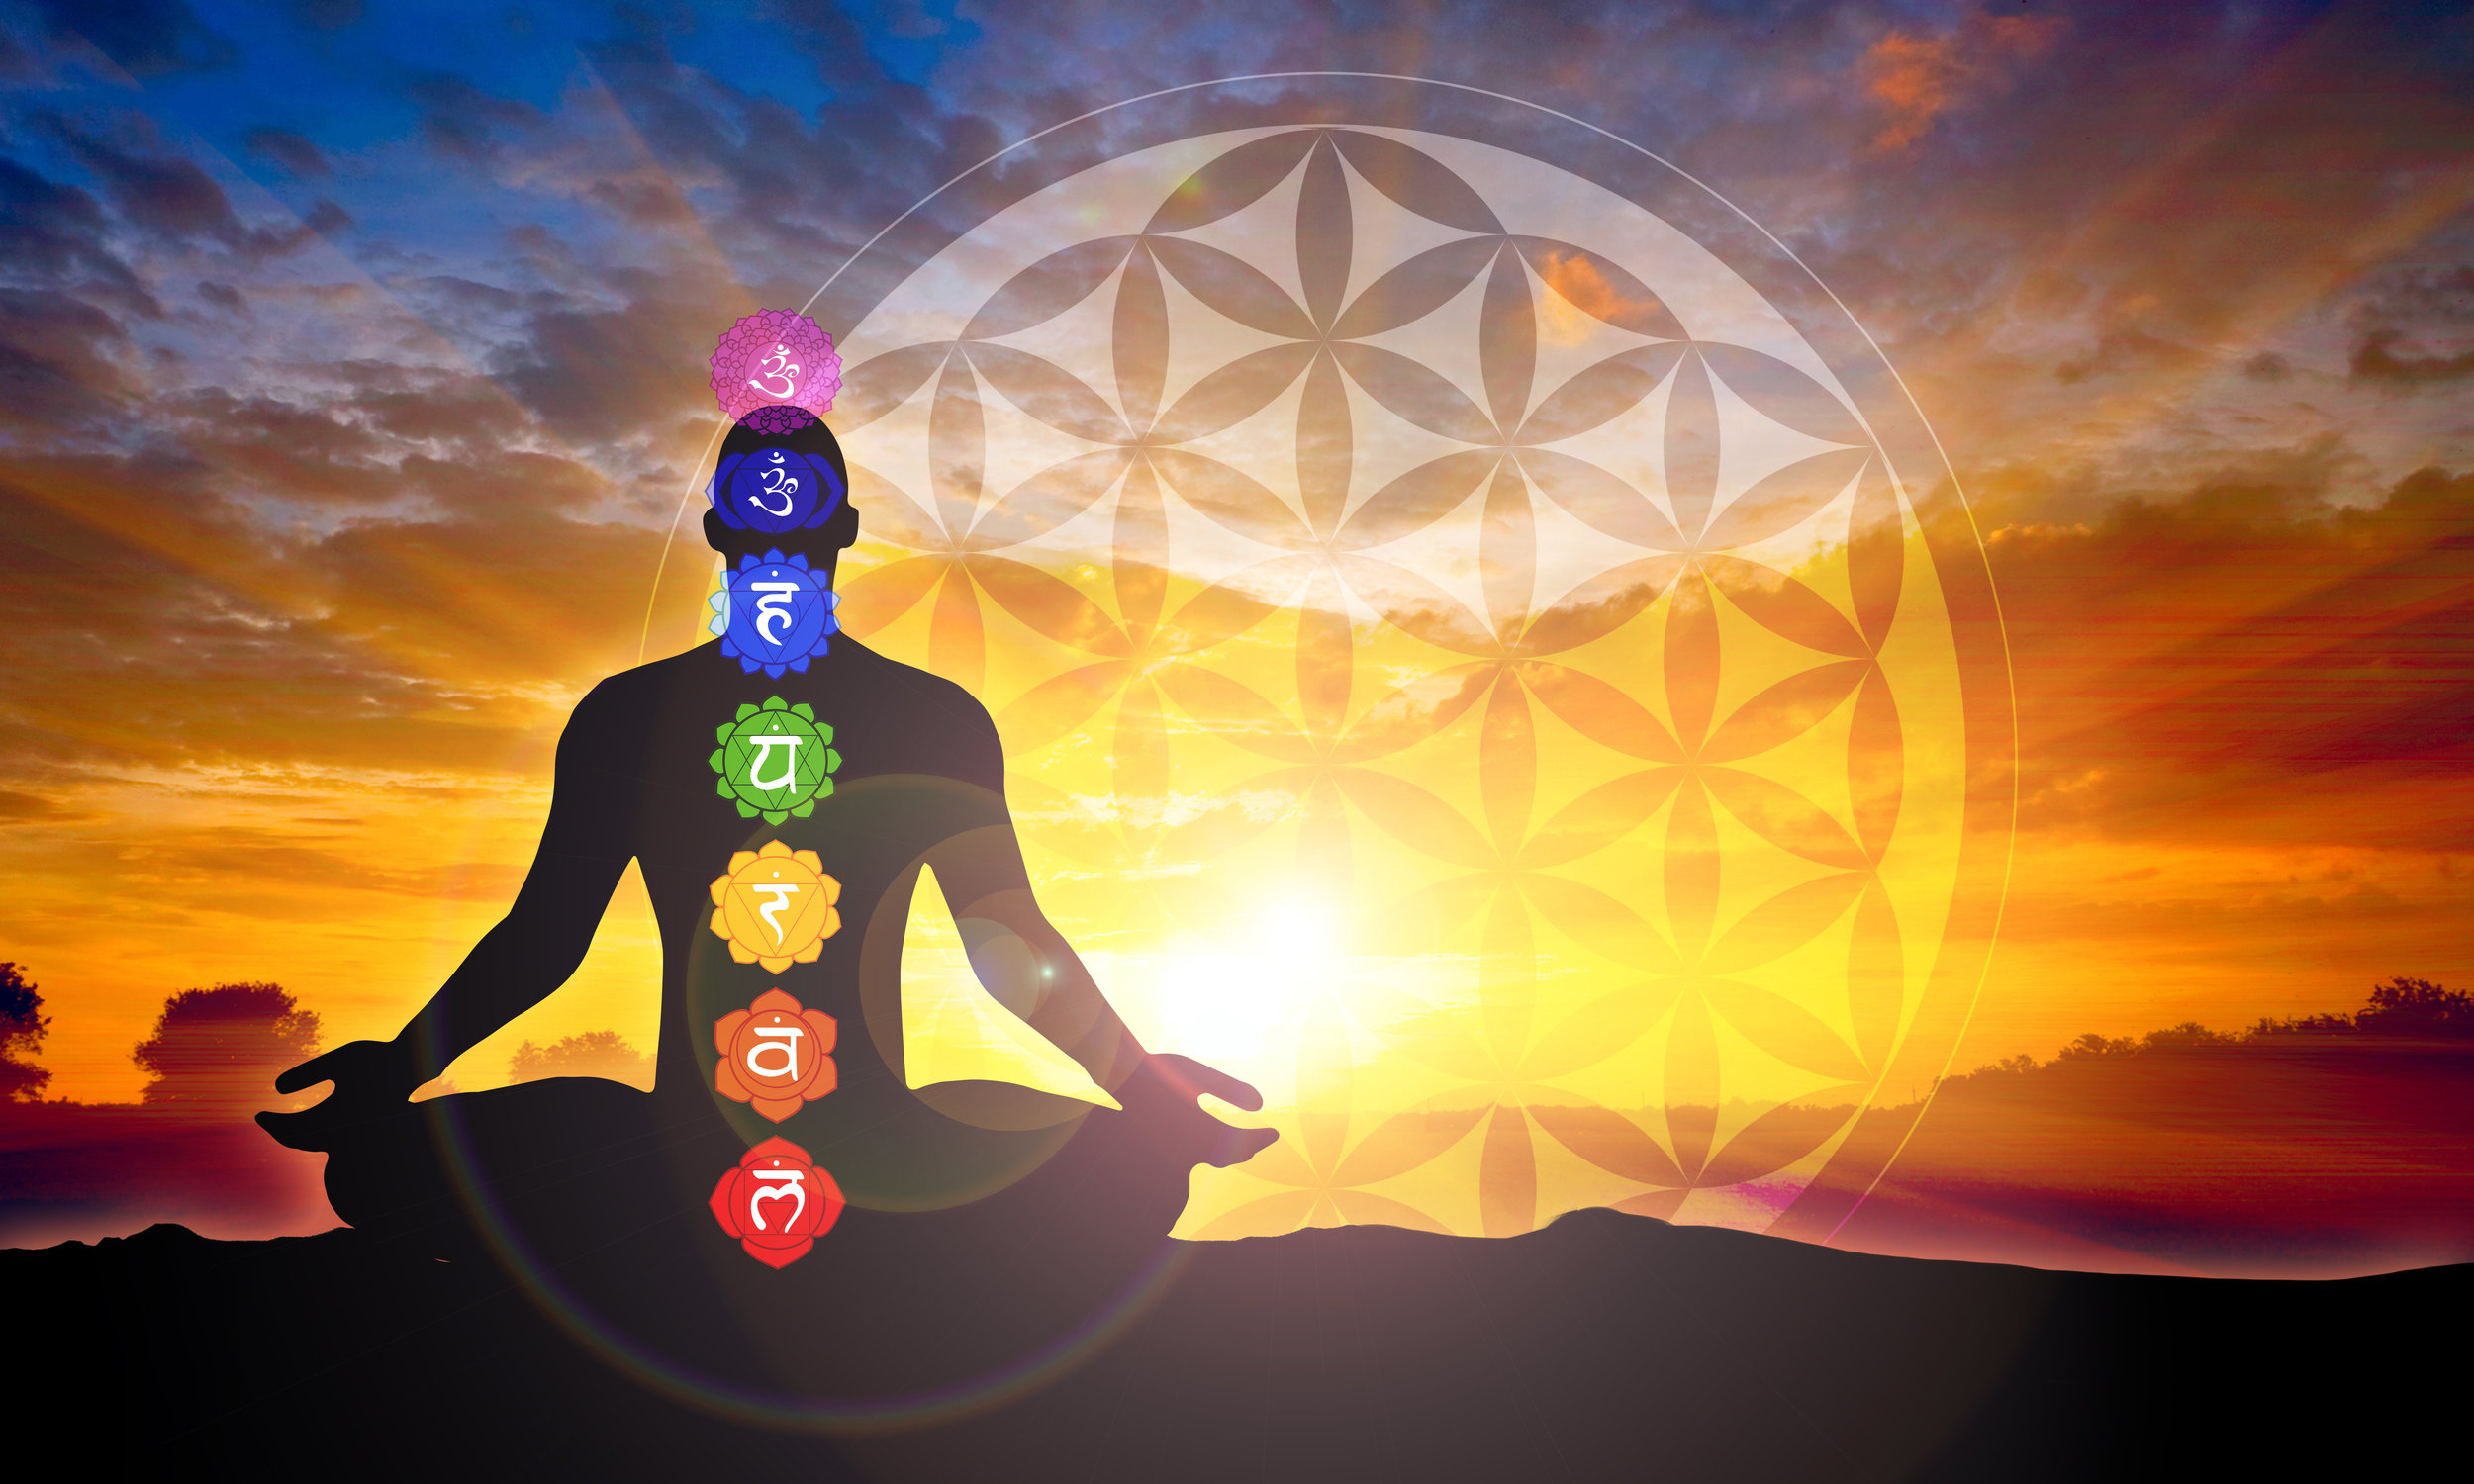 chakras on body.jpeg